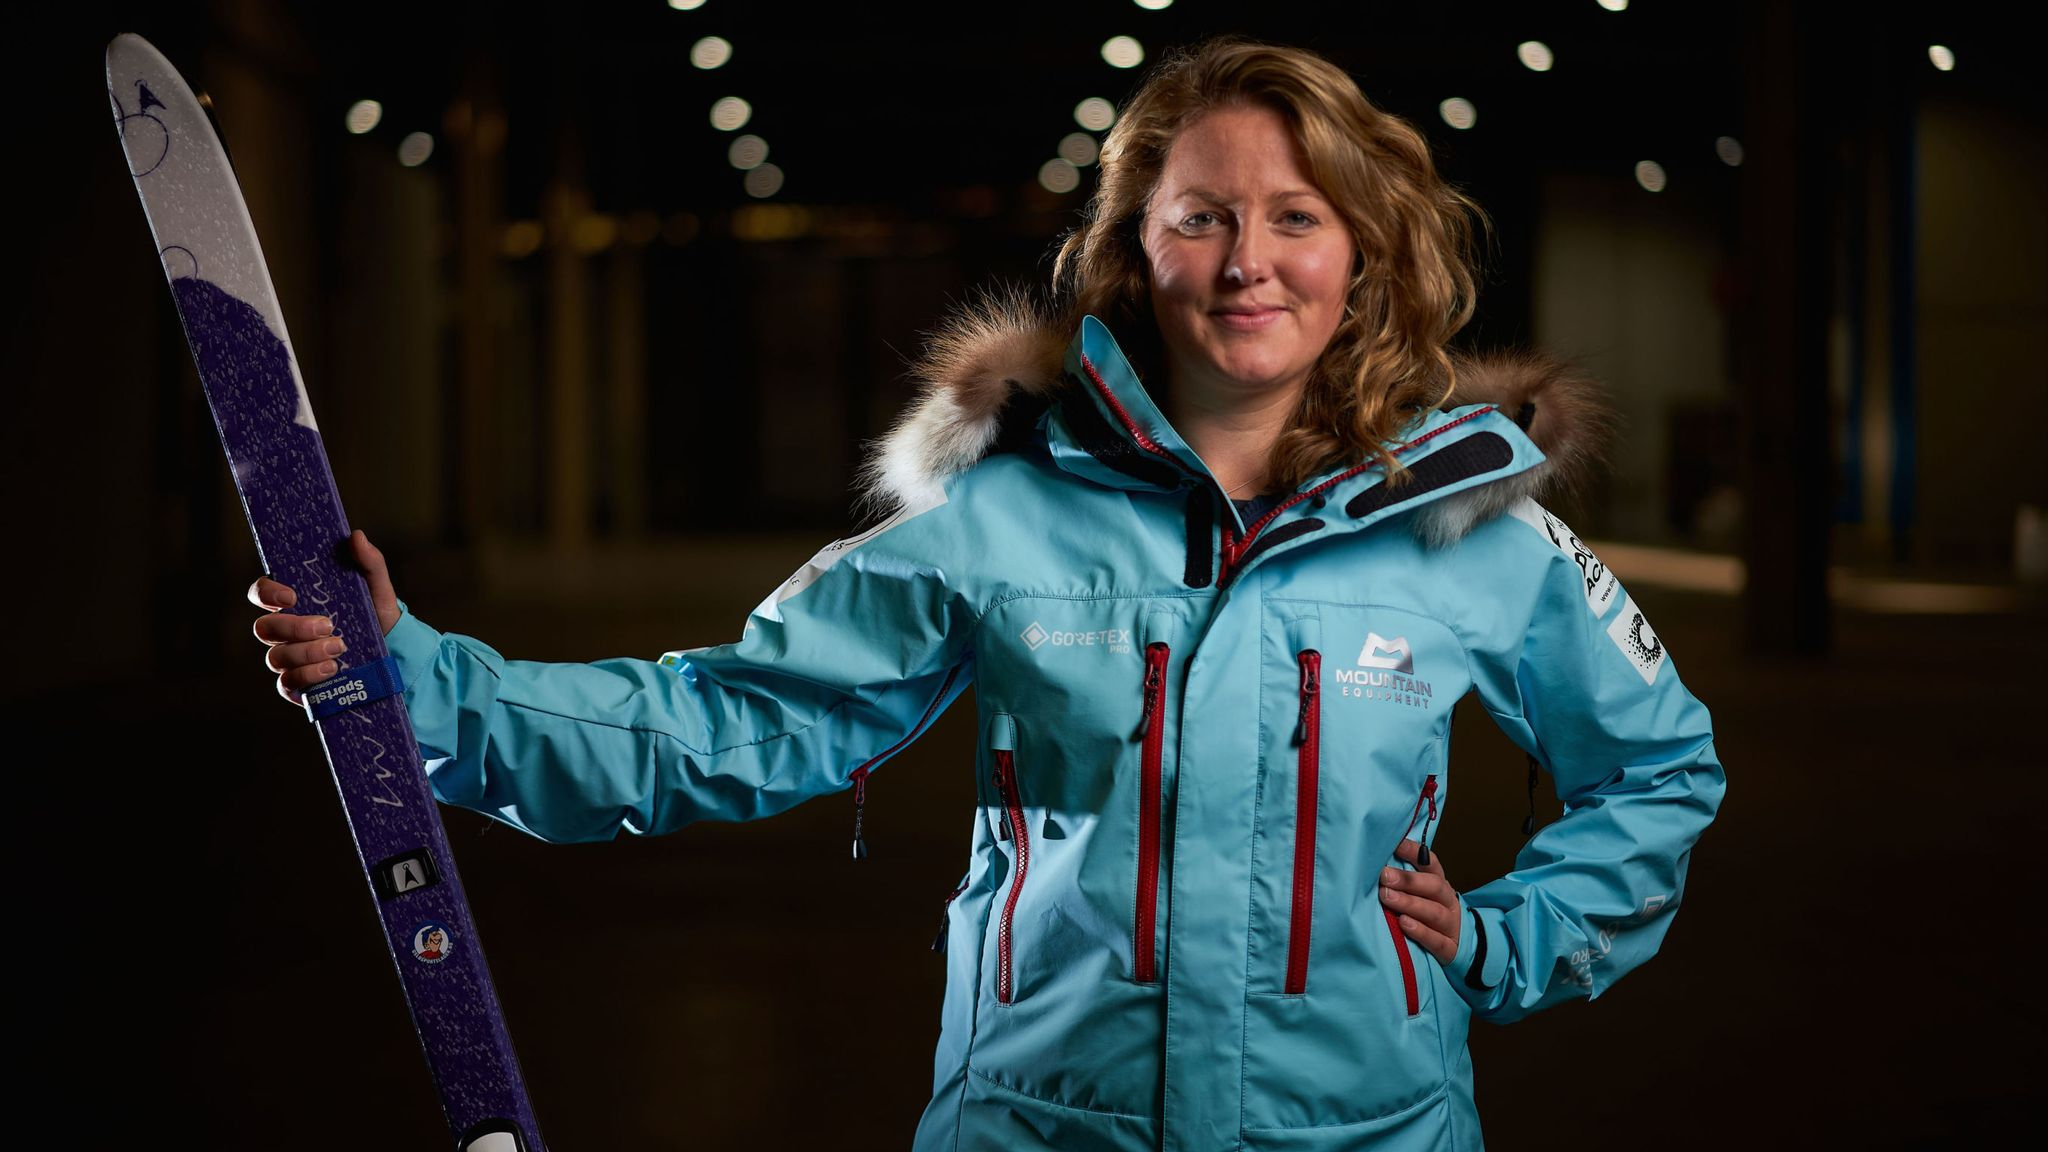 Mollie Hughes: Briton, 29, becomes youngest woman to ski solo to South Pole